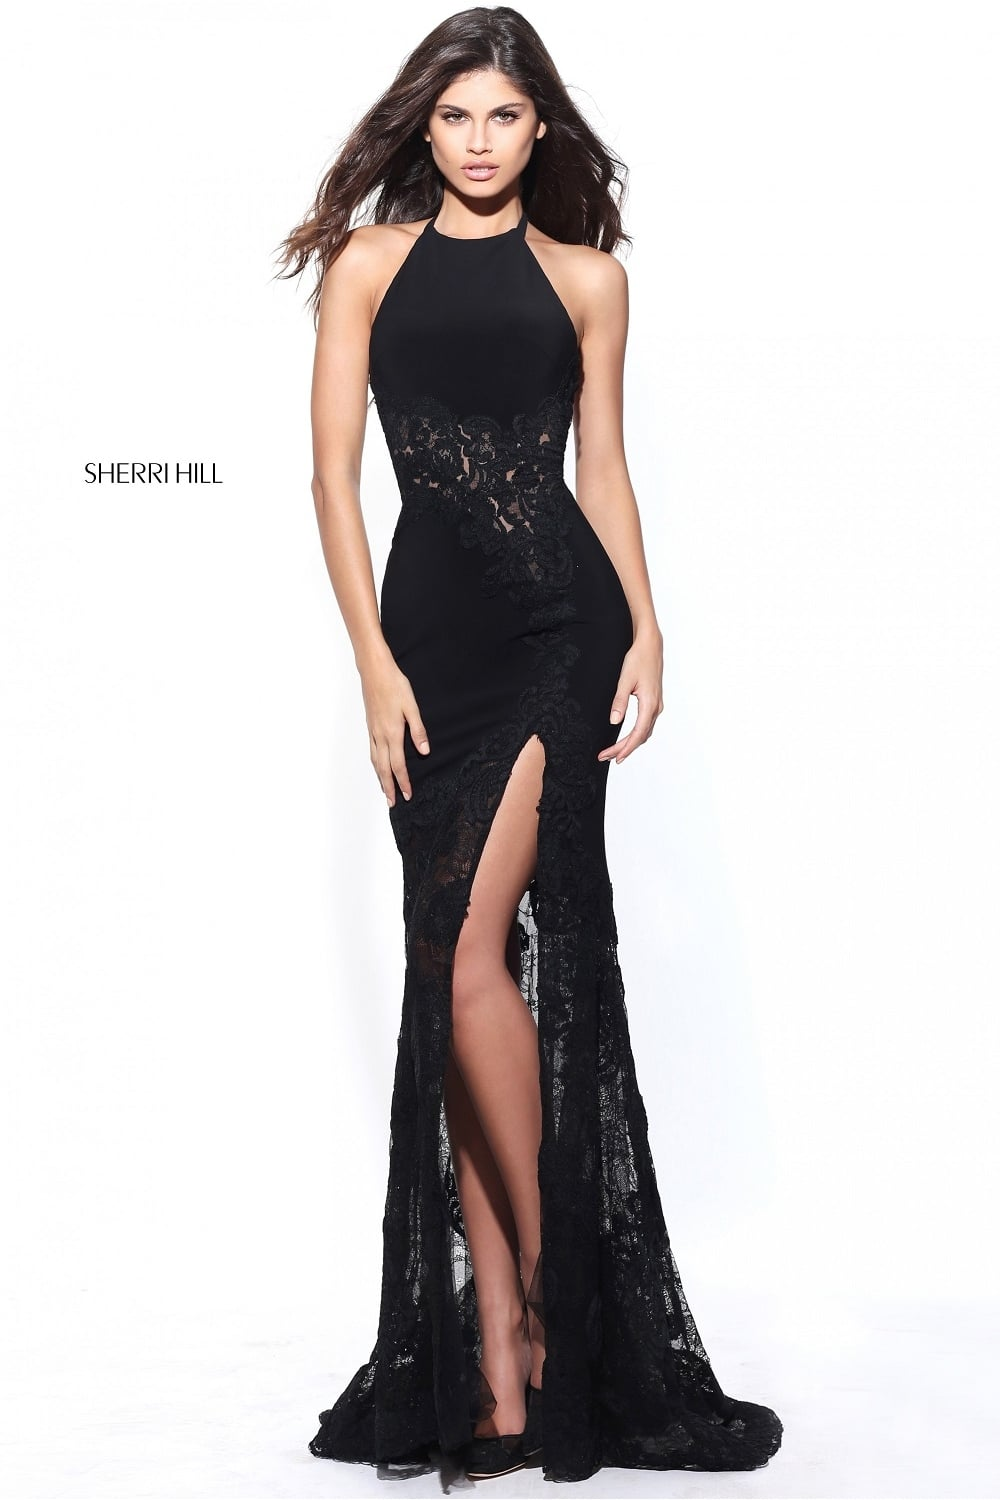 Remarkable, very Sherri hill short black lace dress will